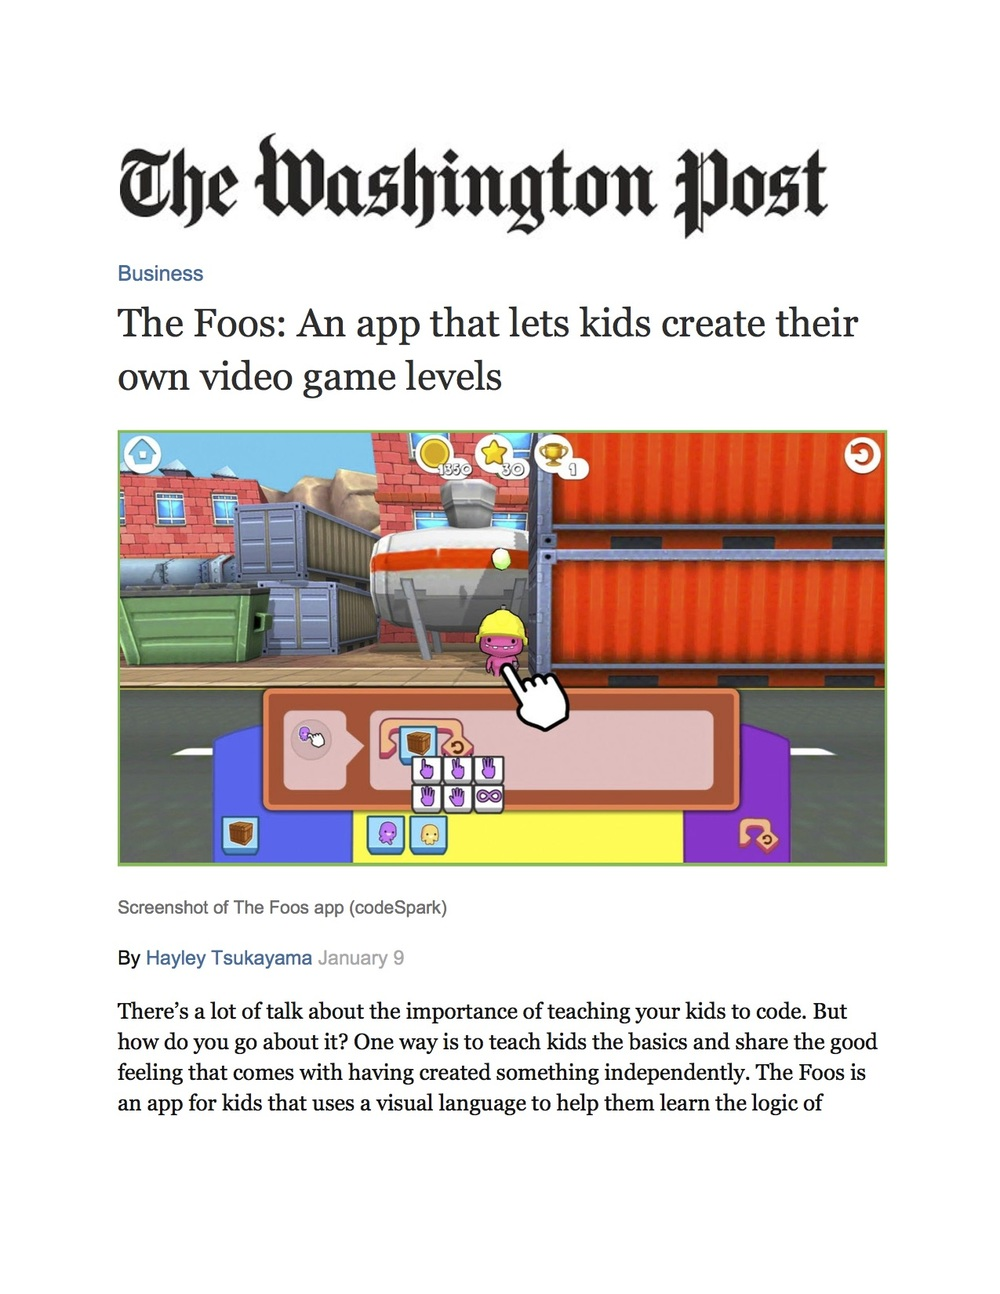 Product Feature: codeSpark, Washington Post